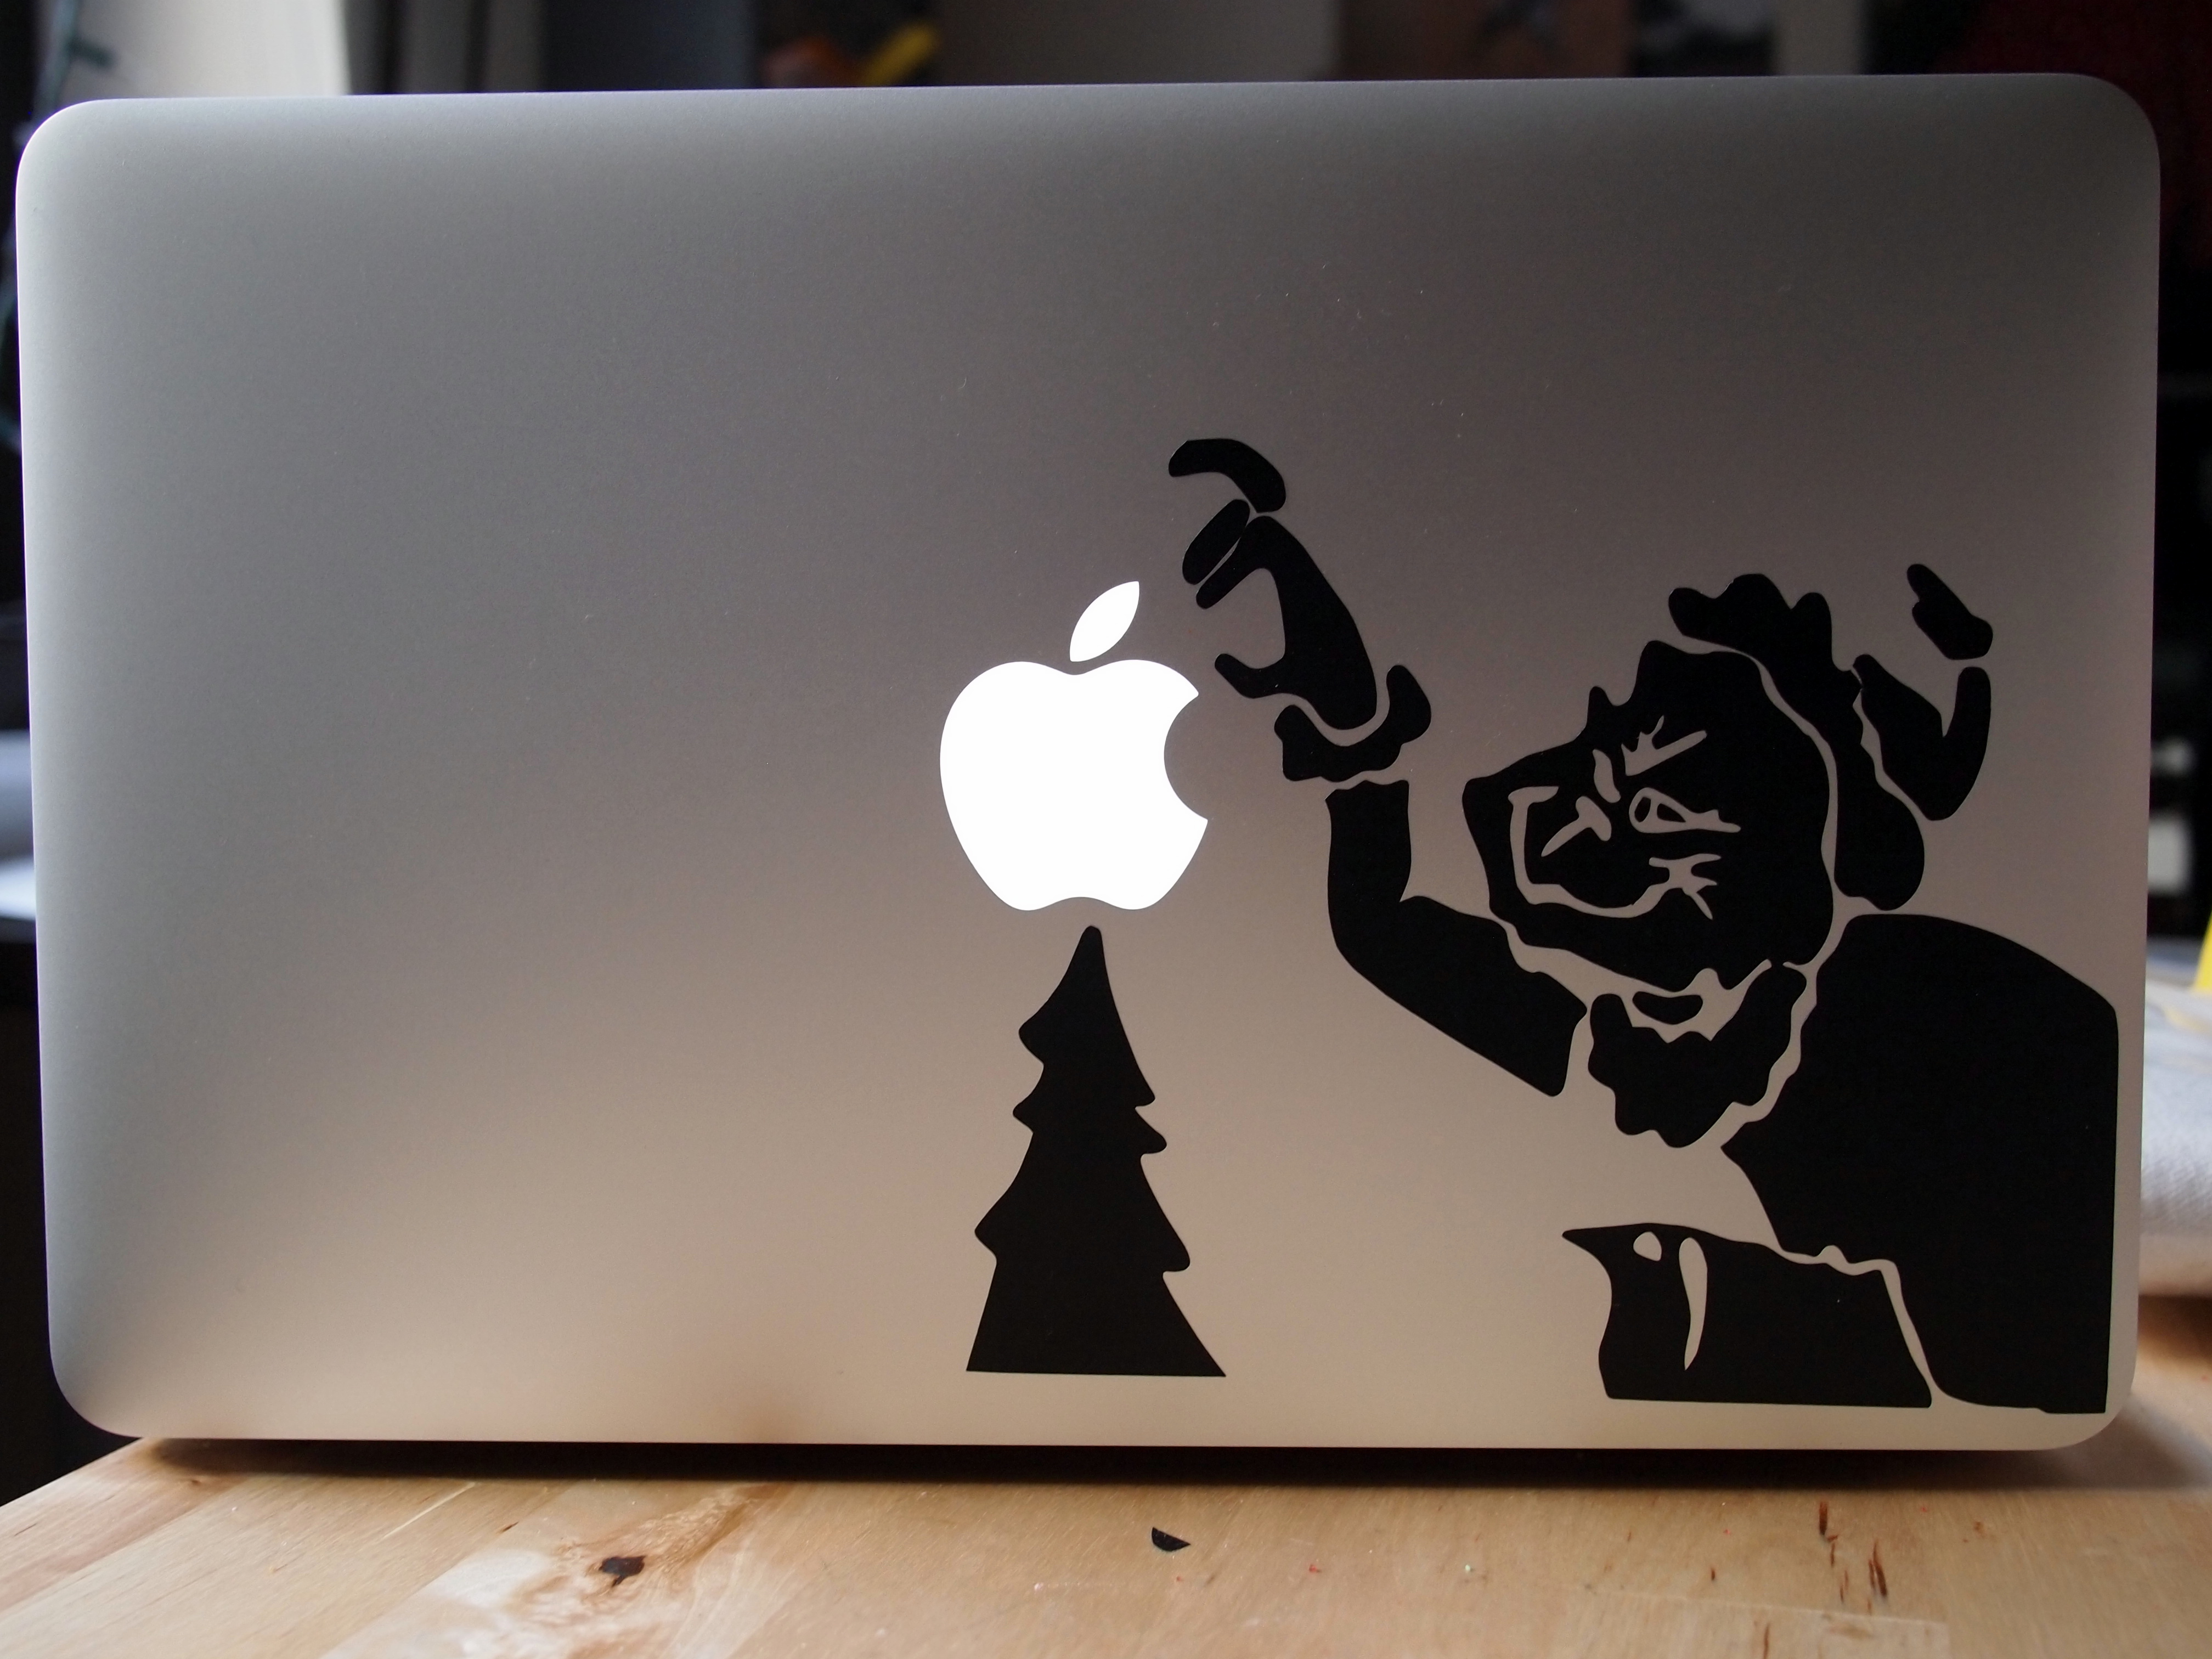 Grinch Laptop Sticker - Make your own decal for laptop